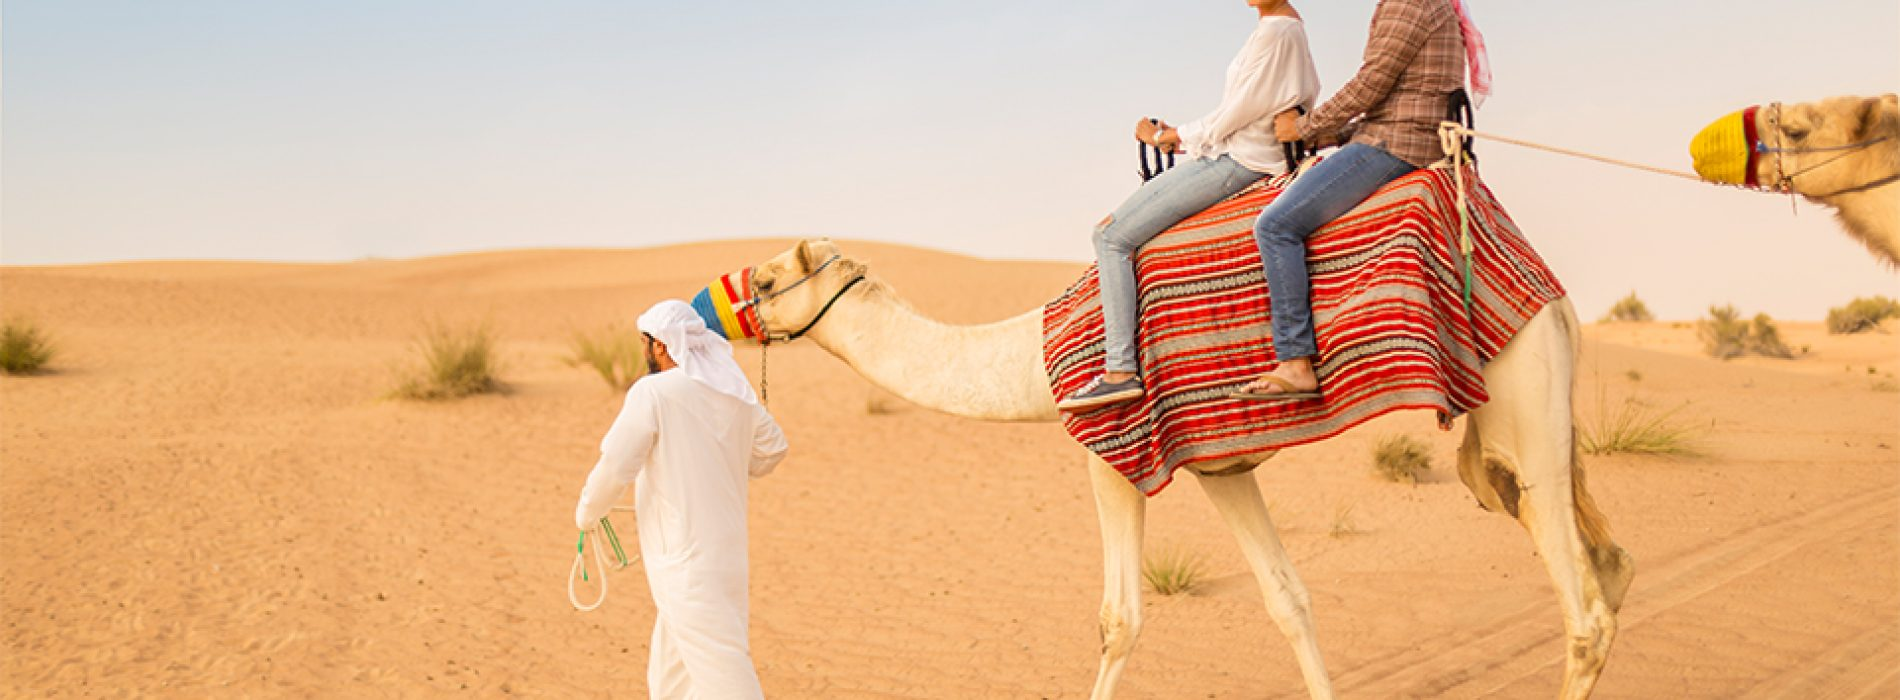 Visit Dubai and its desert safari